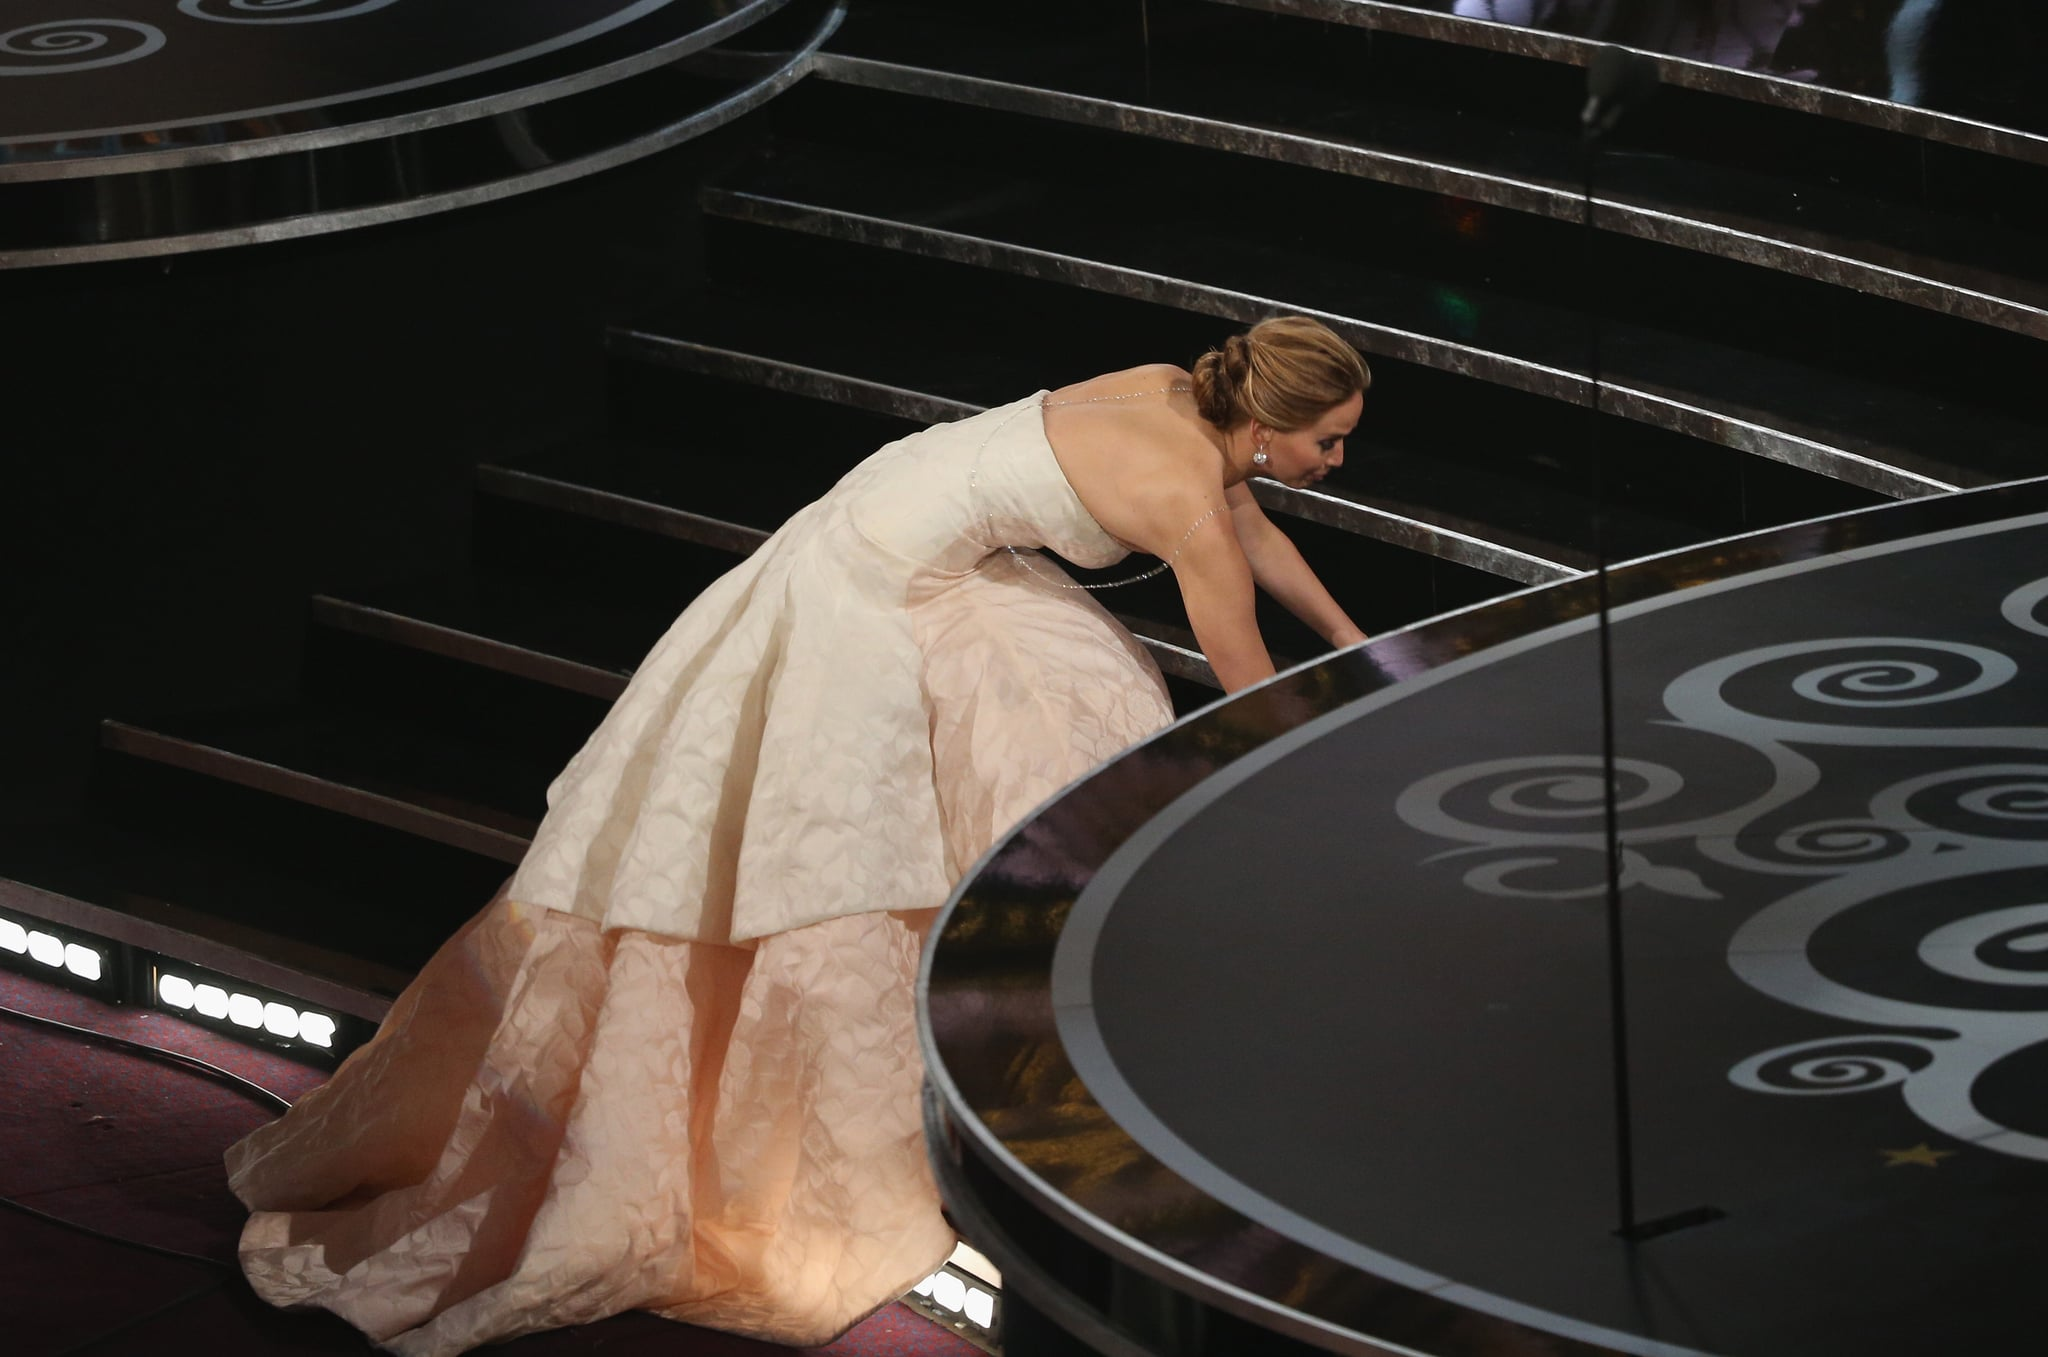 Jennifer Lawrence gracefully fell before accepting her best actress award at the Oscars 2013.